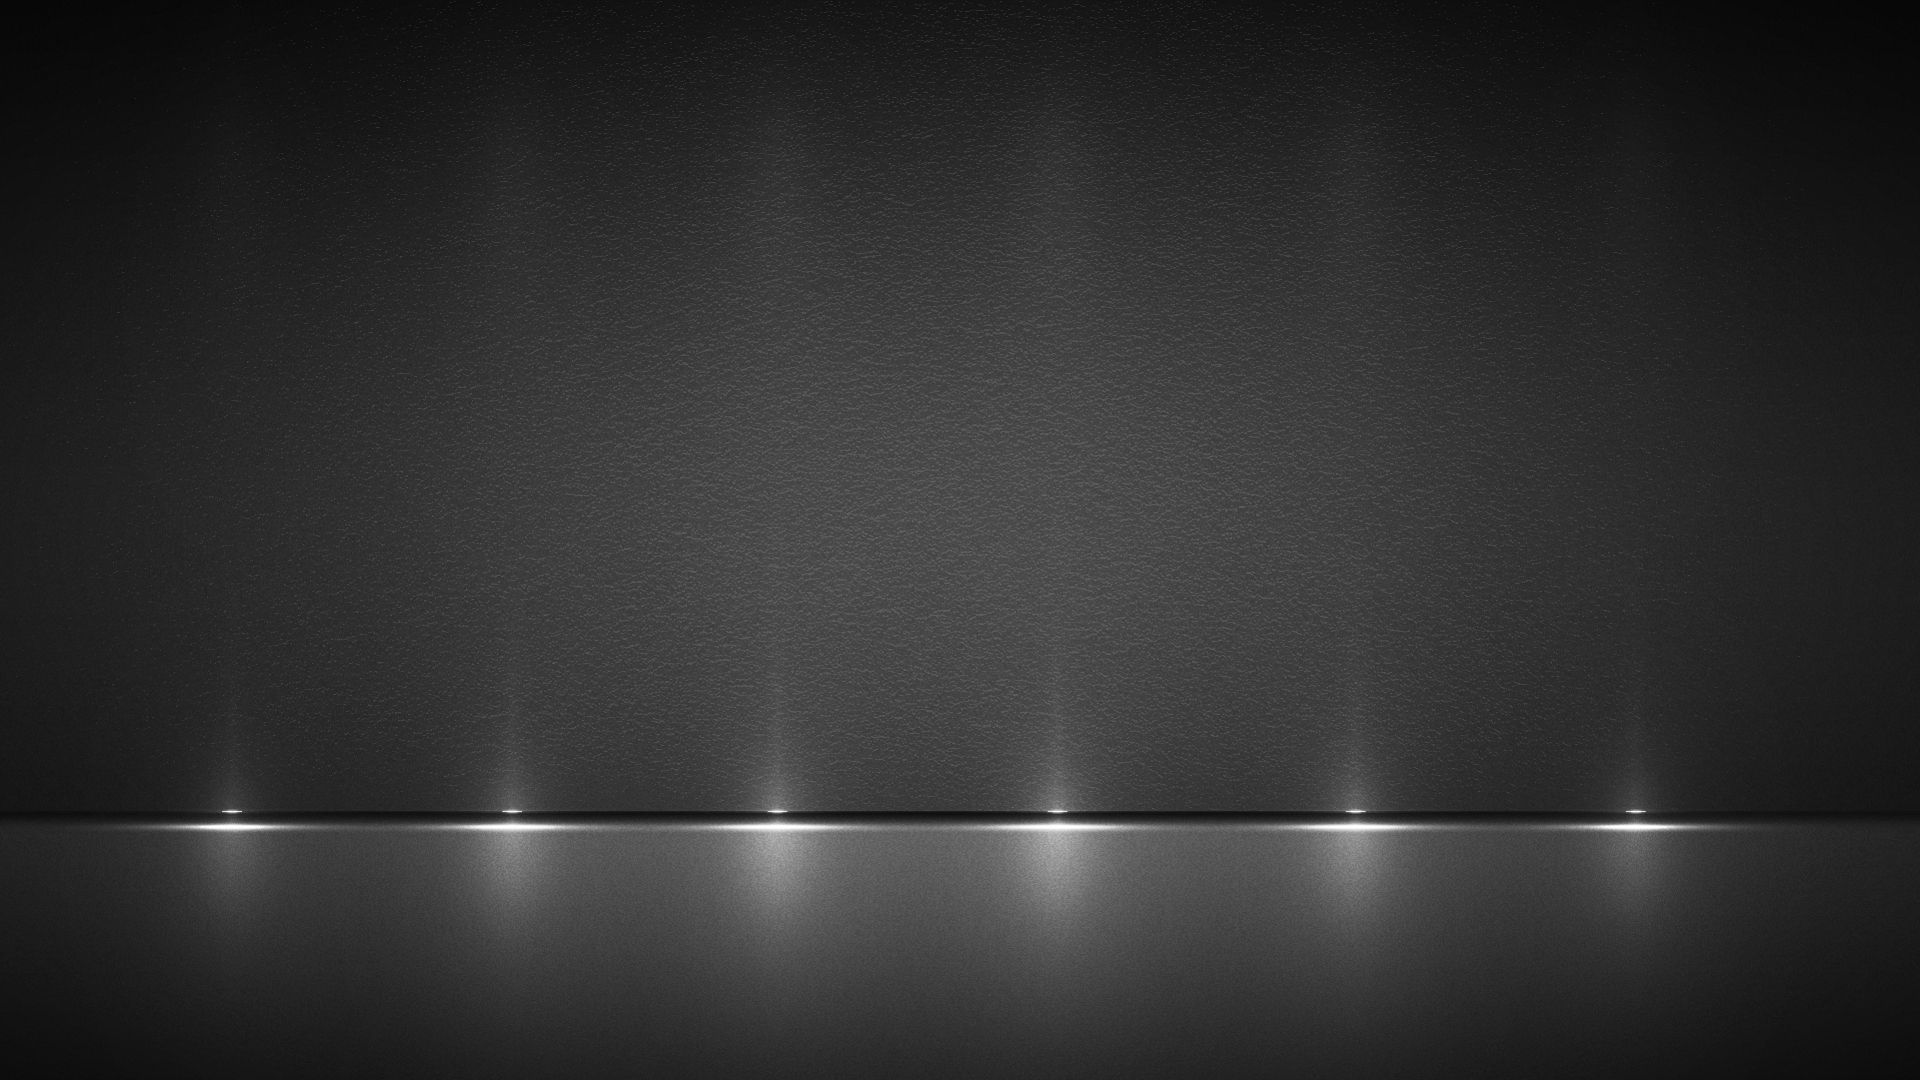 Elegant grey illumination background presentations for Black and grey wallpaper designs